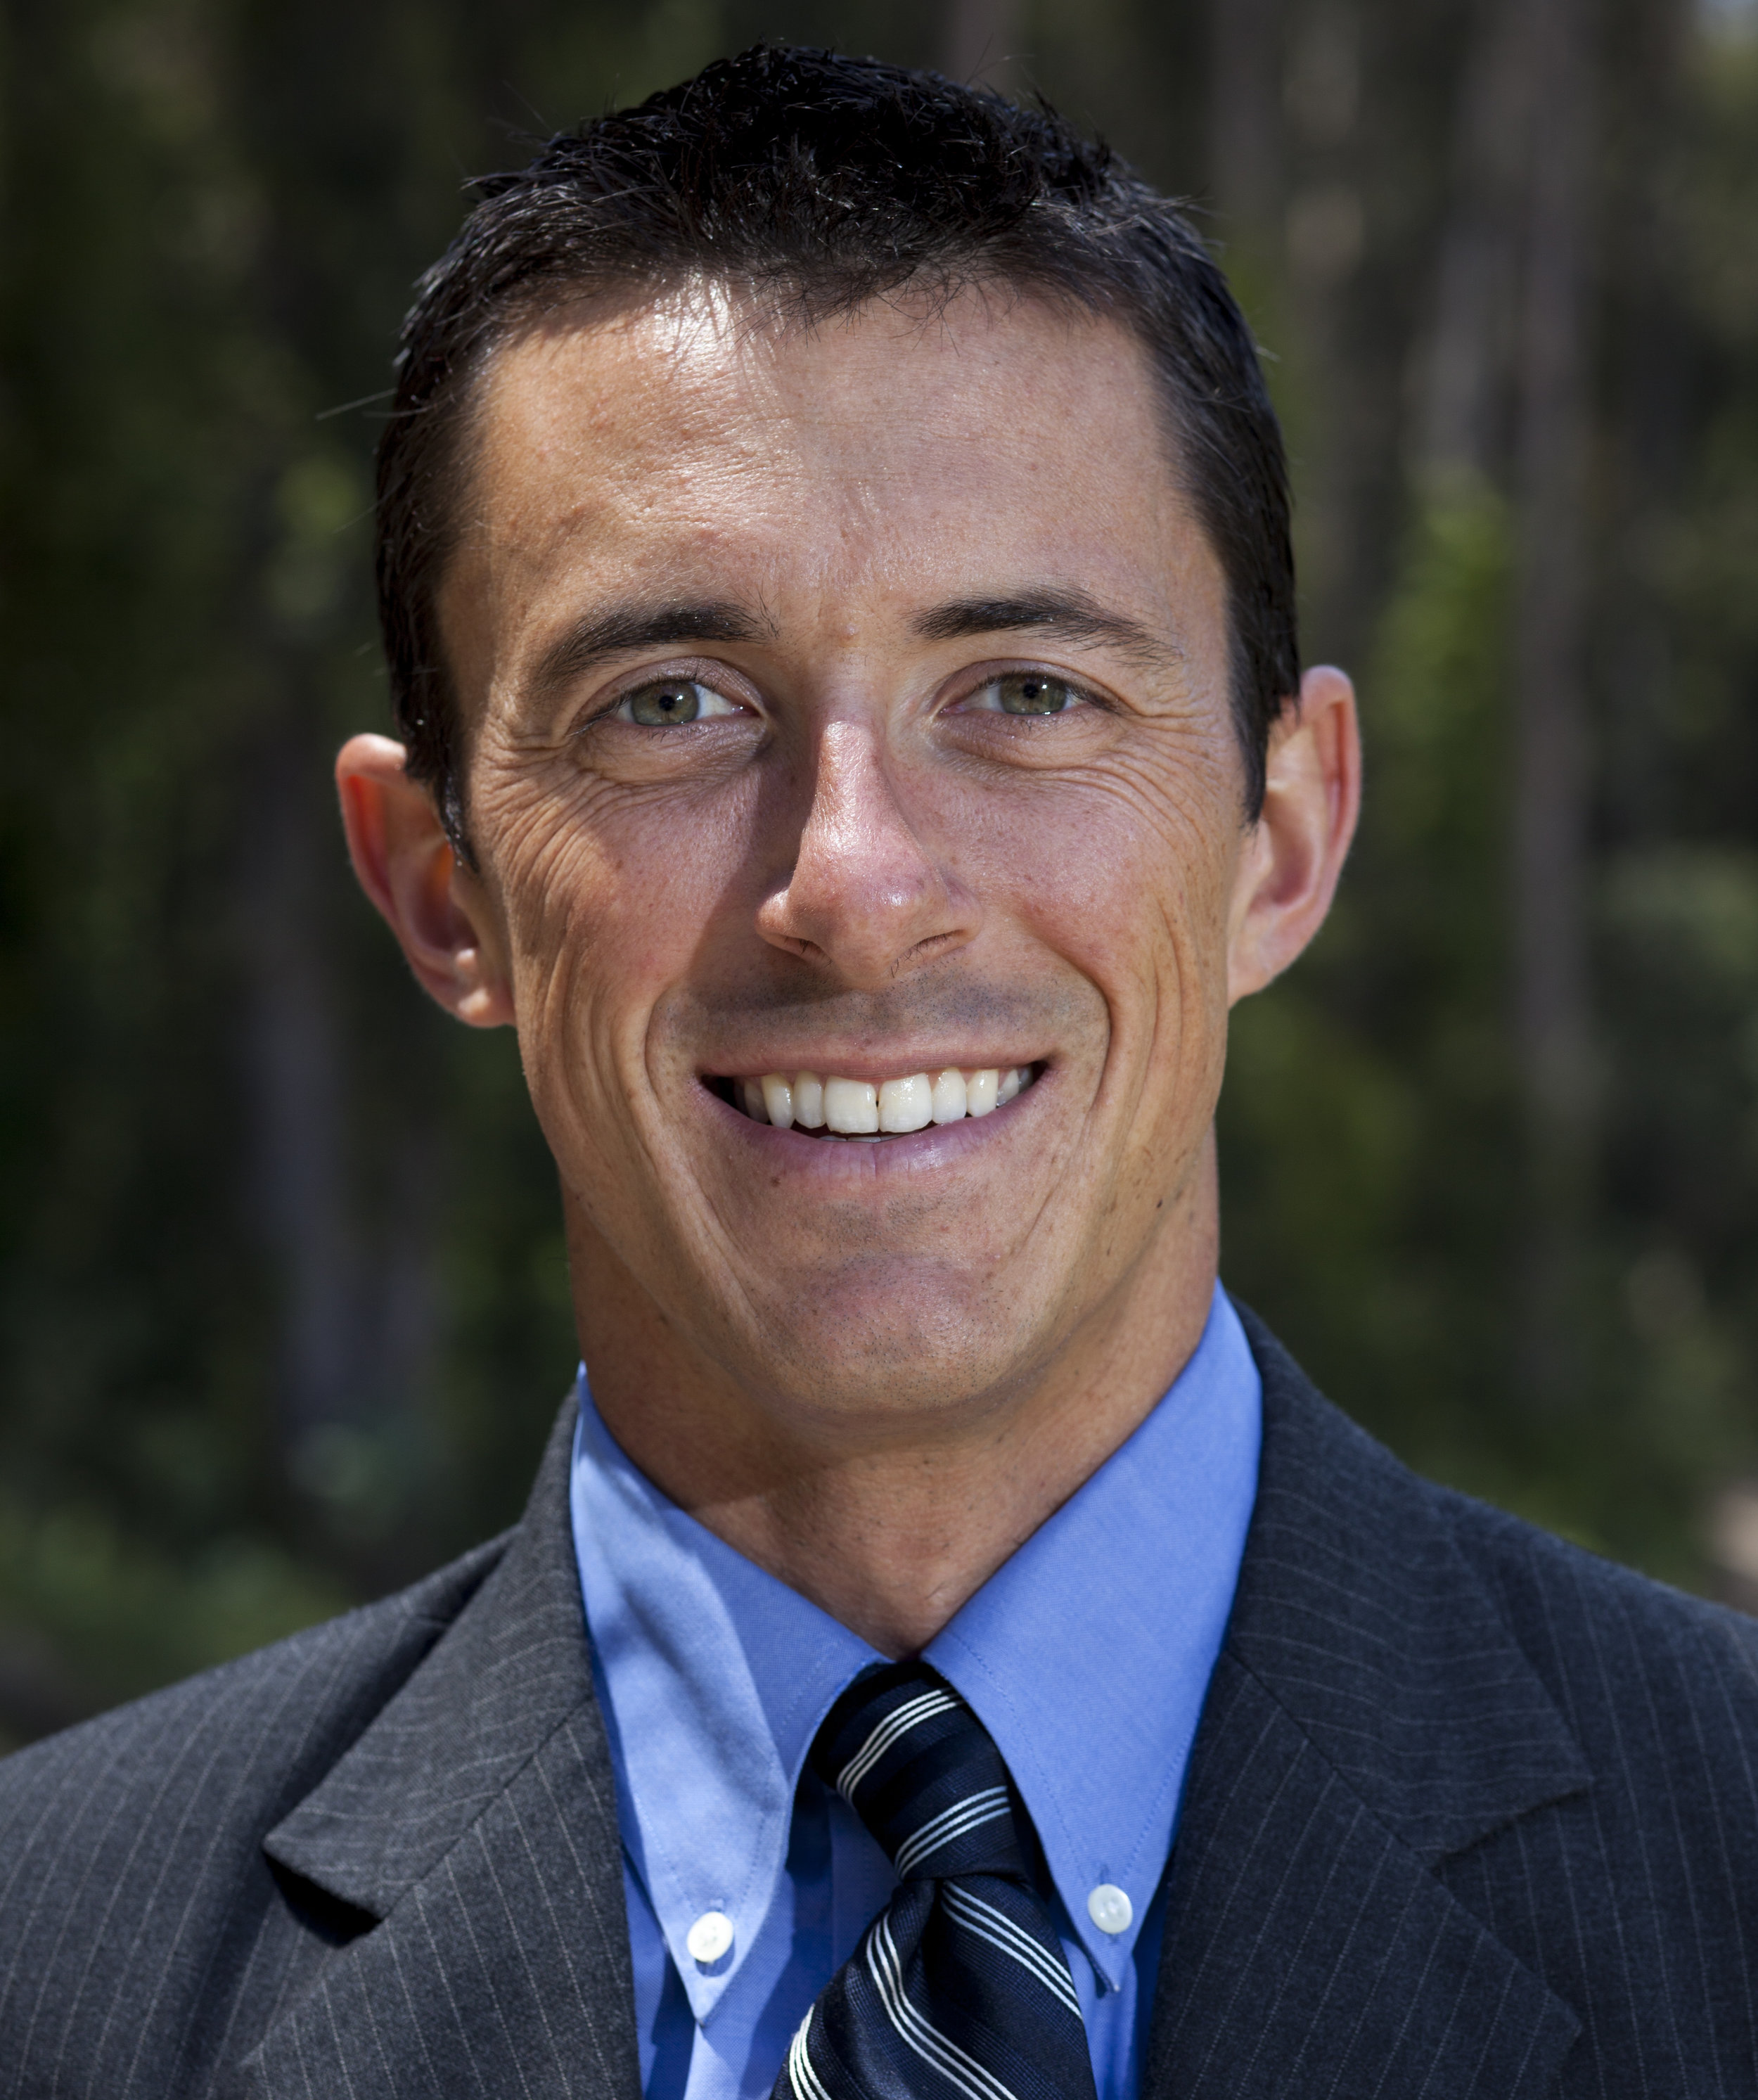 iAN mCHENRY , cO-FOUNDER, cEO BEYOND pRICING